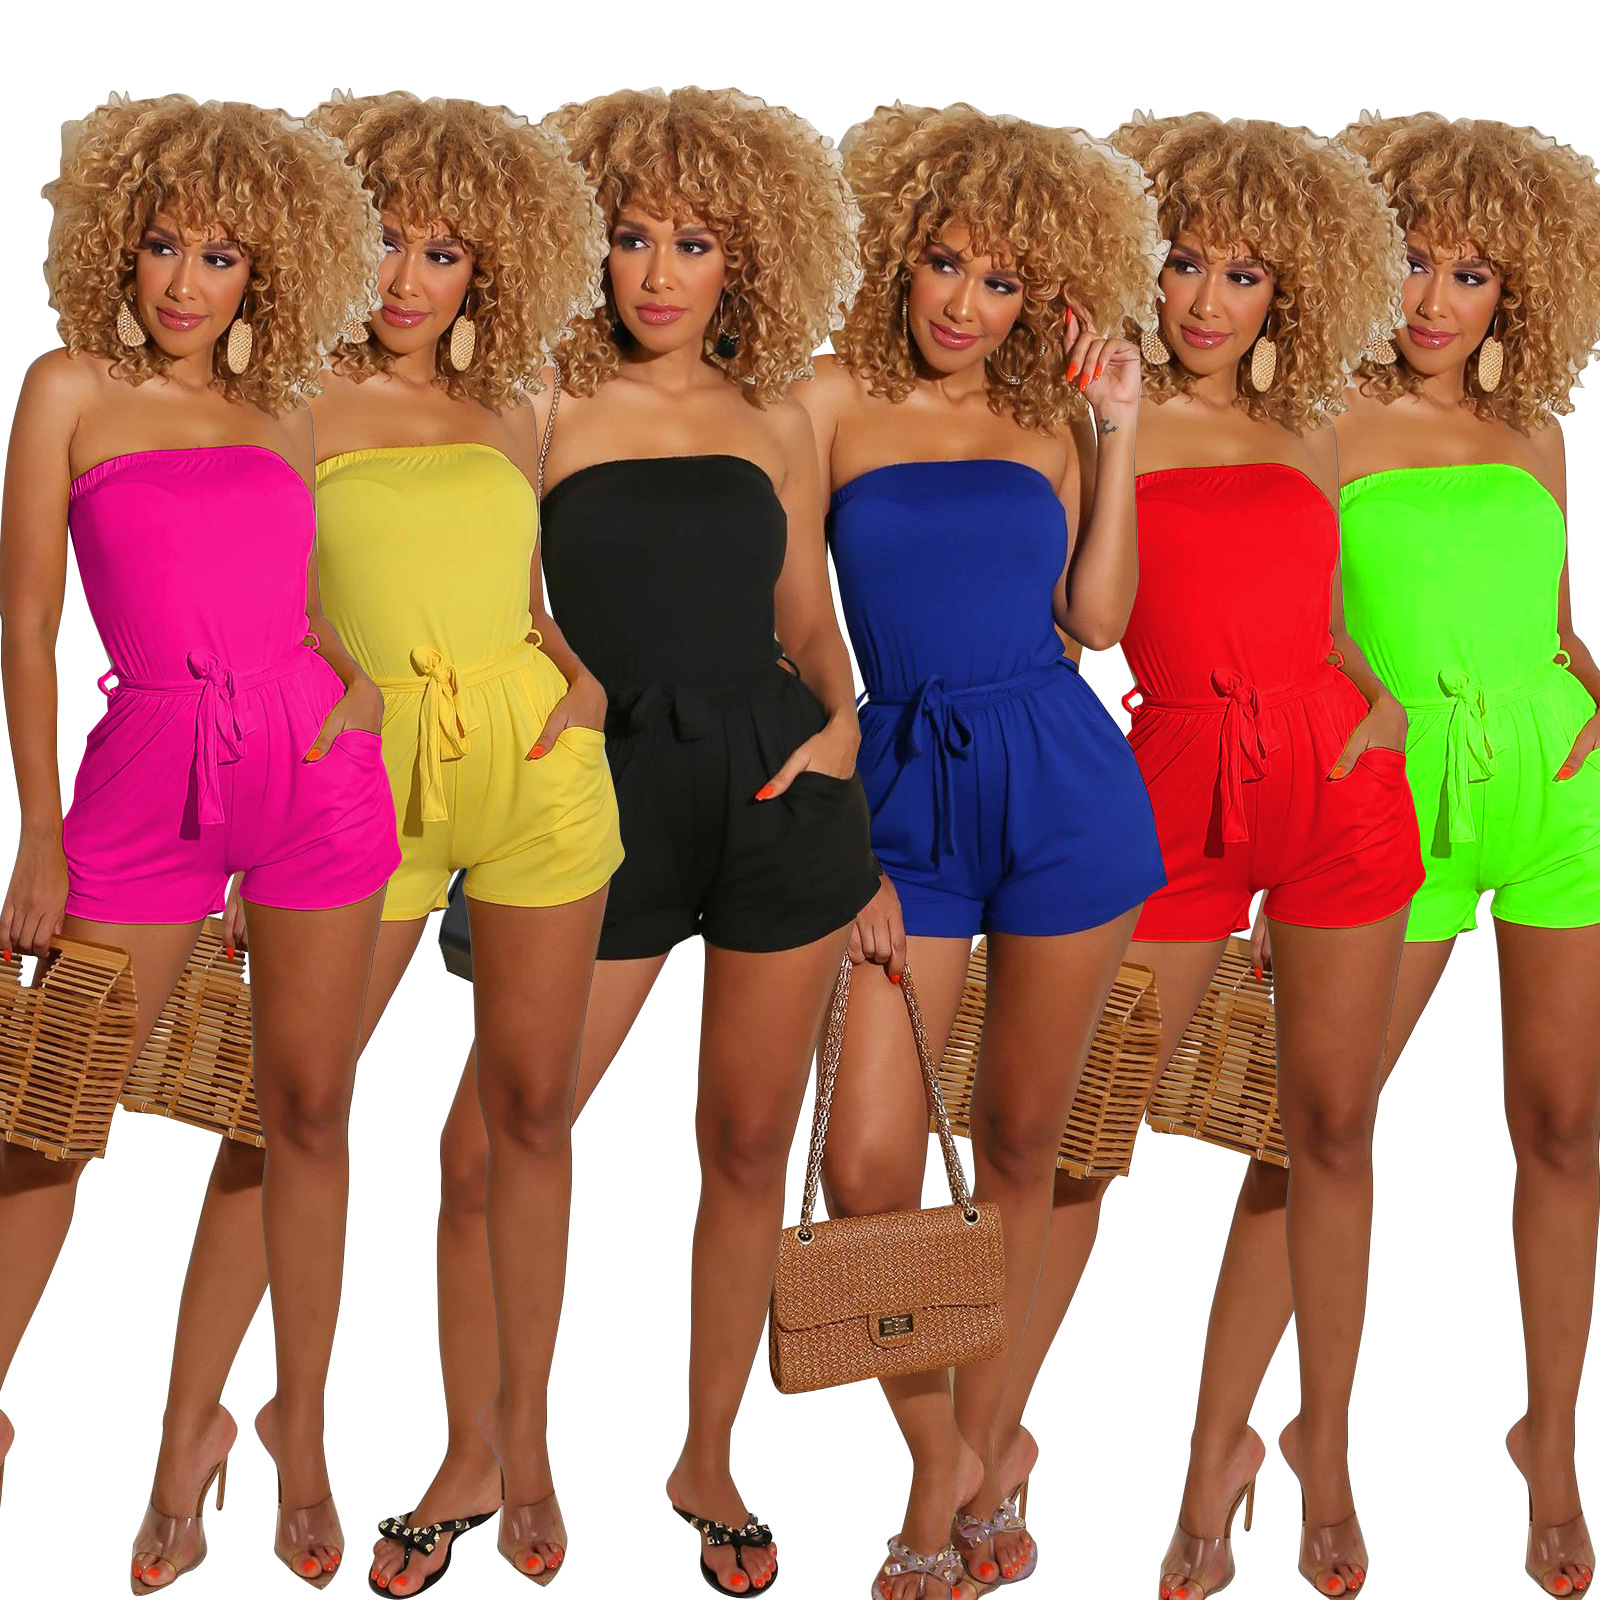 Echoine 2020 summer Sport Women Solid Color Strapless With Sashes Sexy Bodysuit Jumpsuit High Street Overall Romper Playsuit